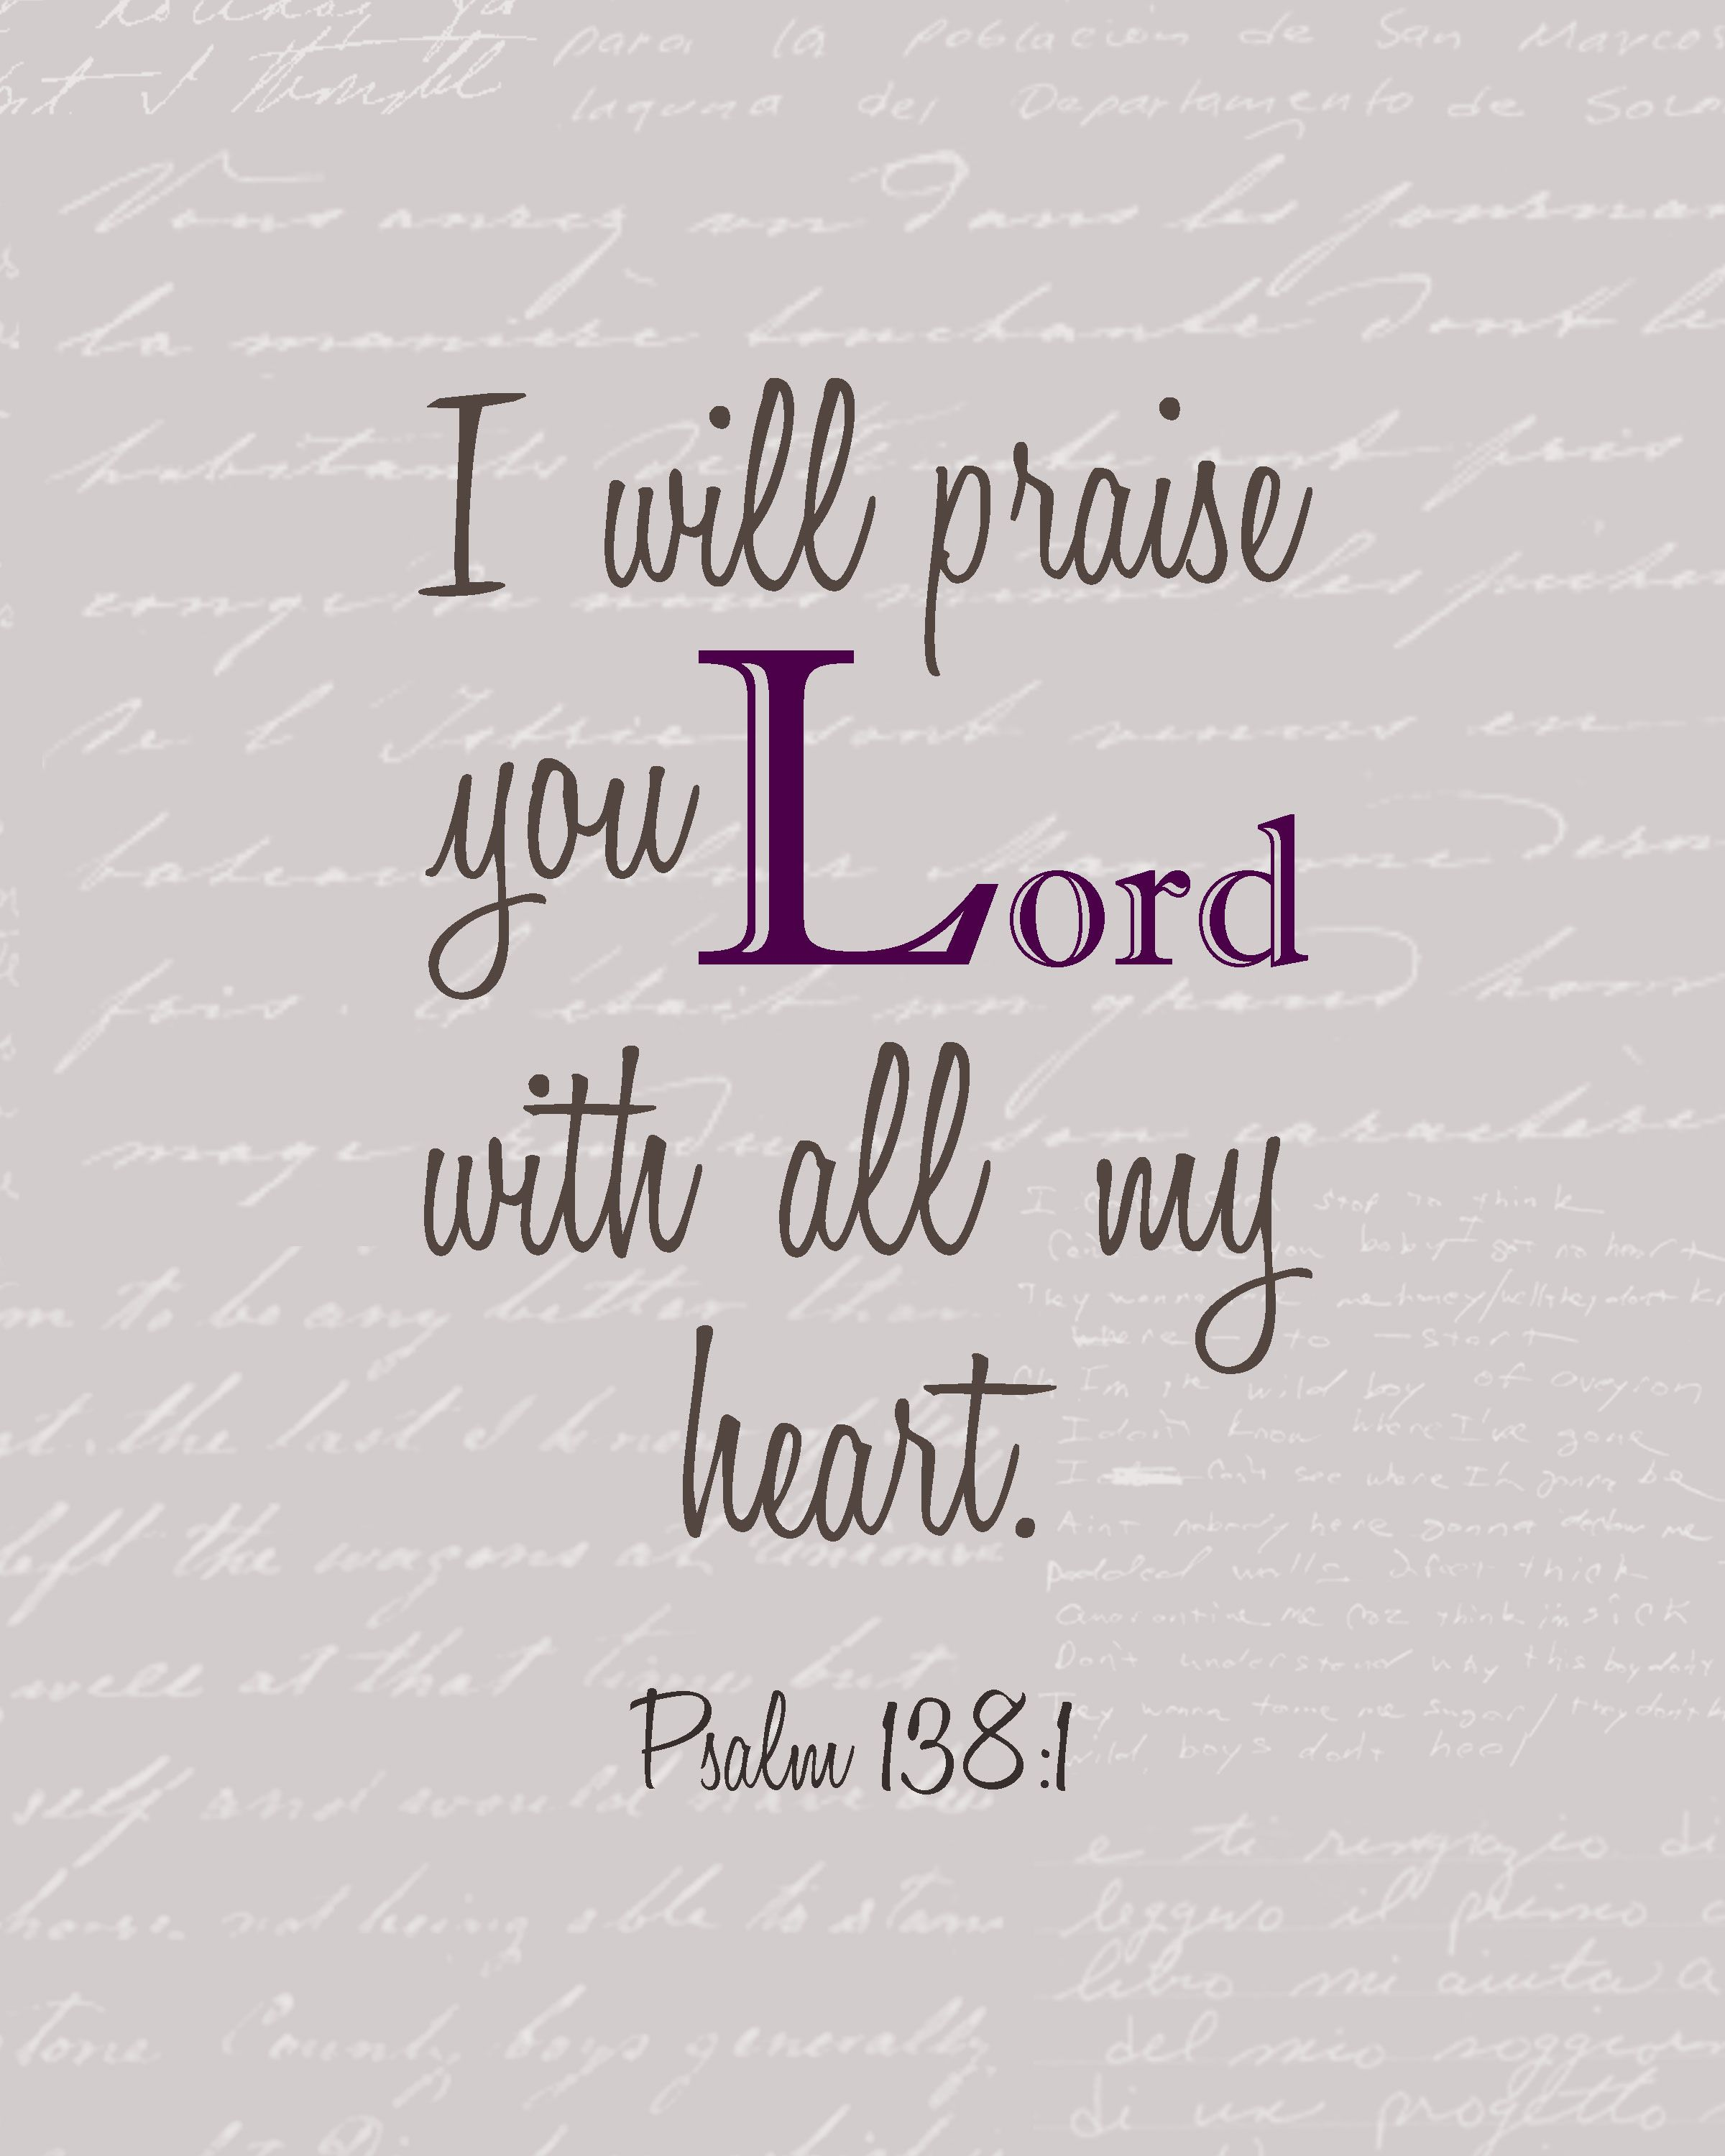 Pin on Bible verses to live by